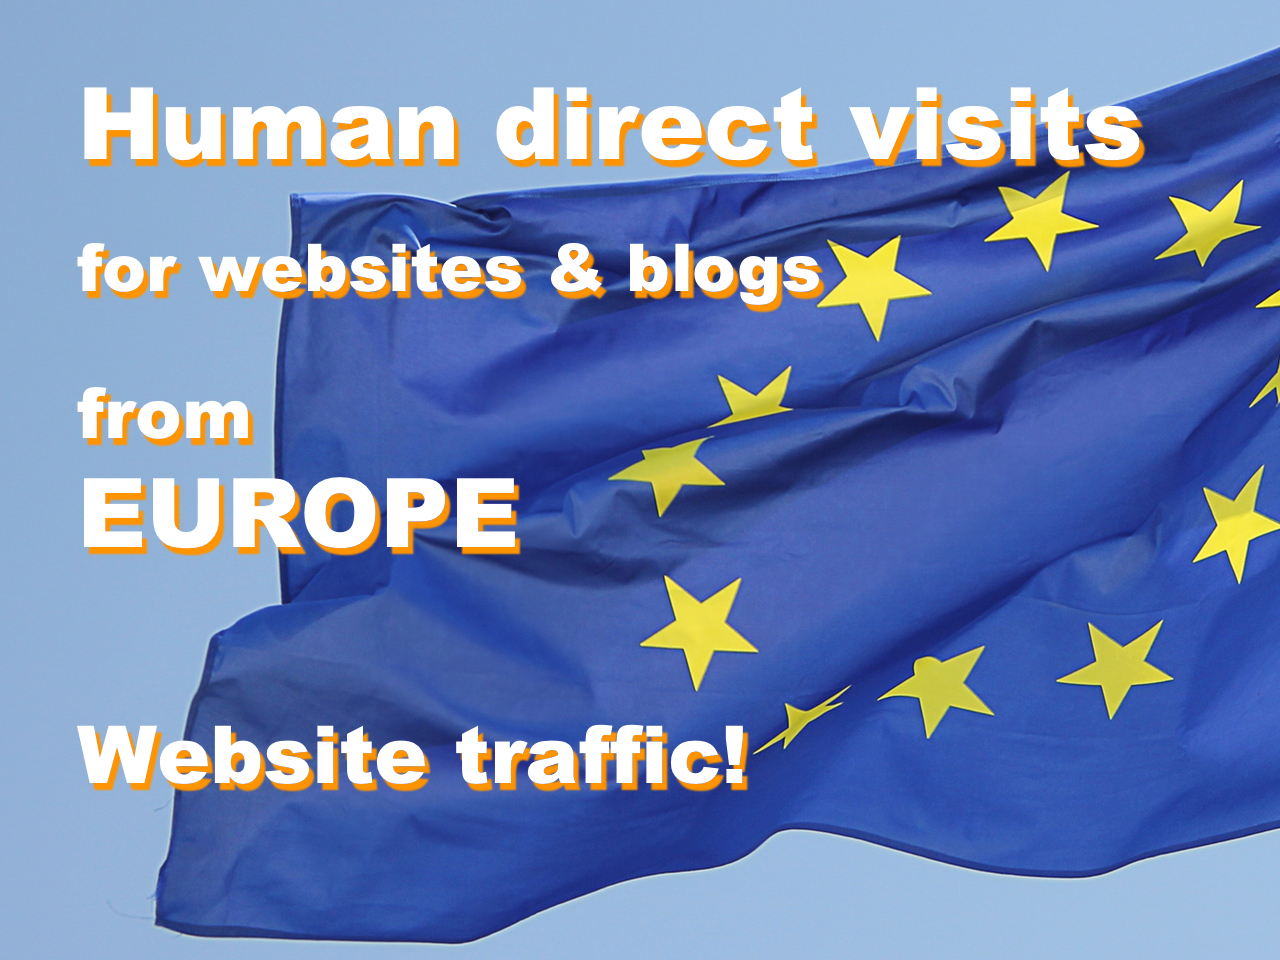 Traffic from Europe, human direct visits